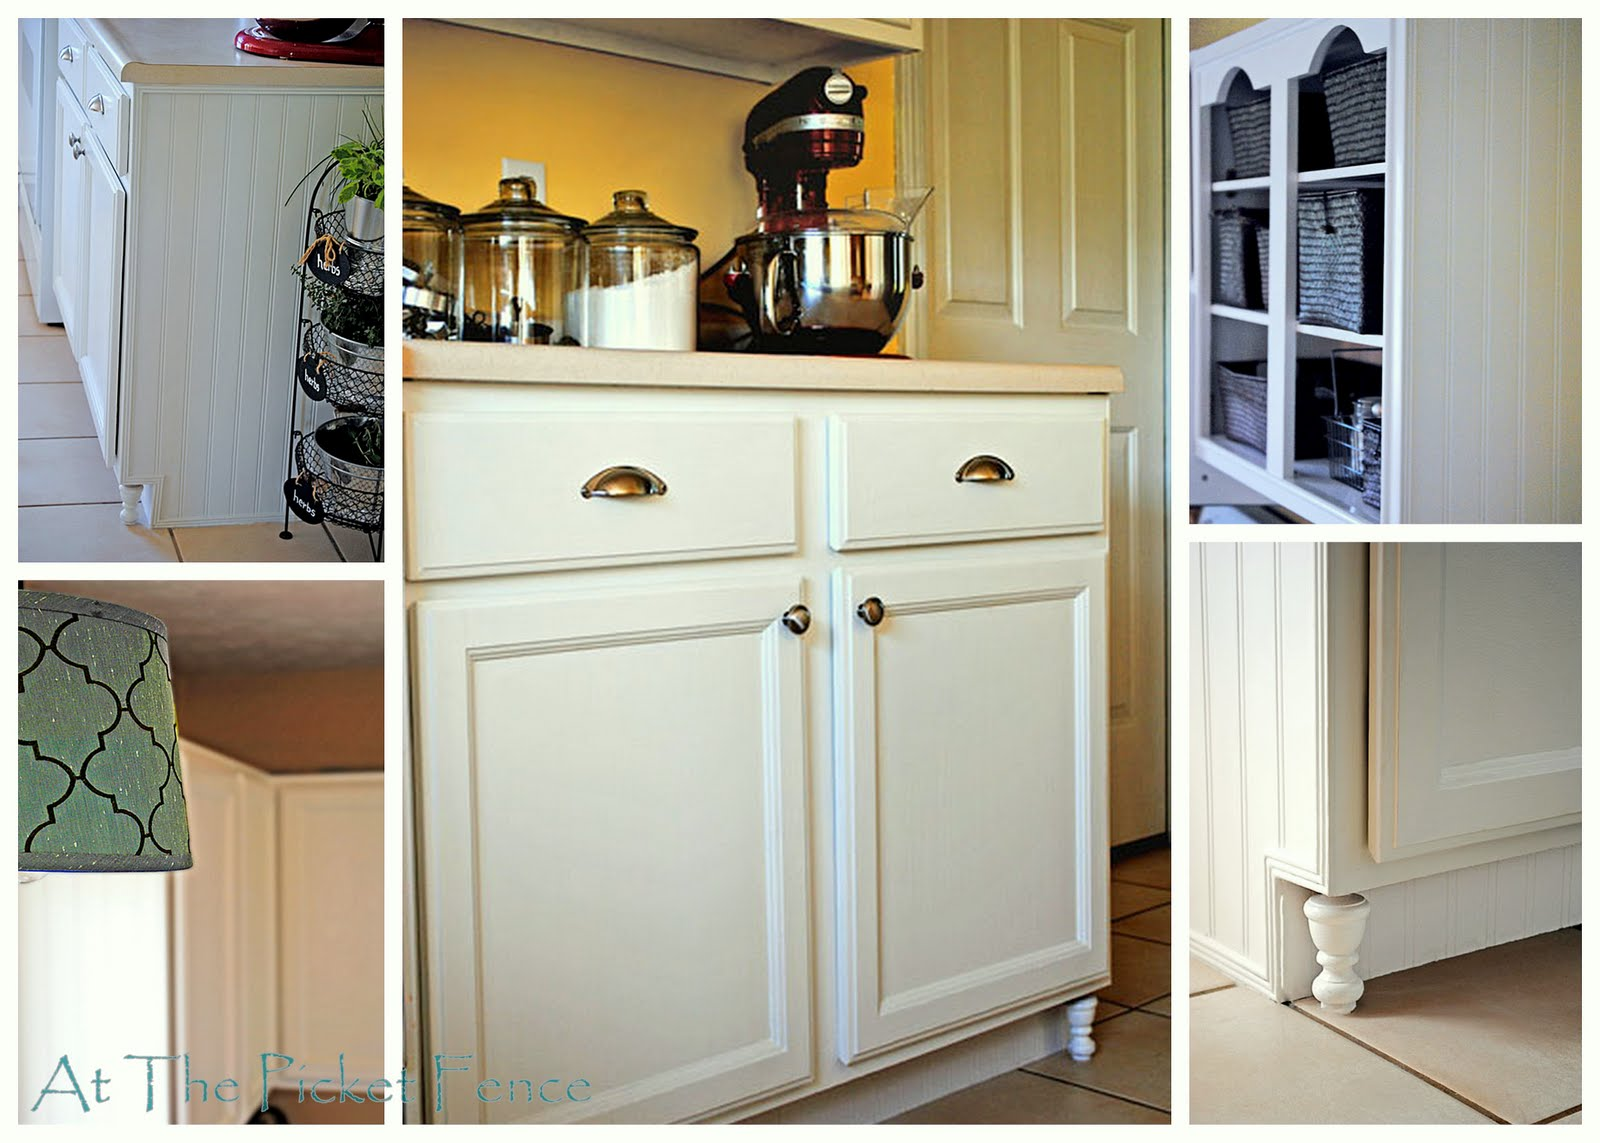 Make Your Own Frugal Kitchen Cabinet Feet Ask Home Design